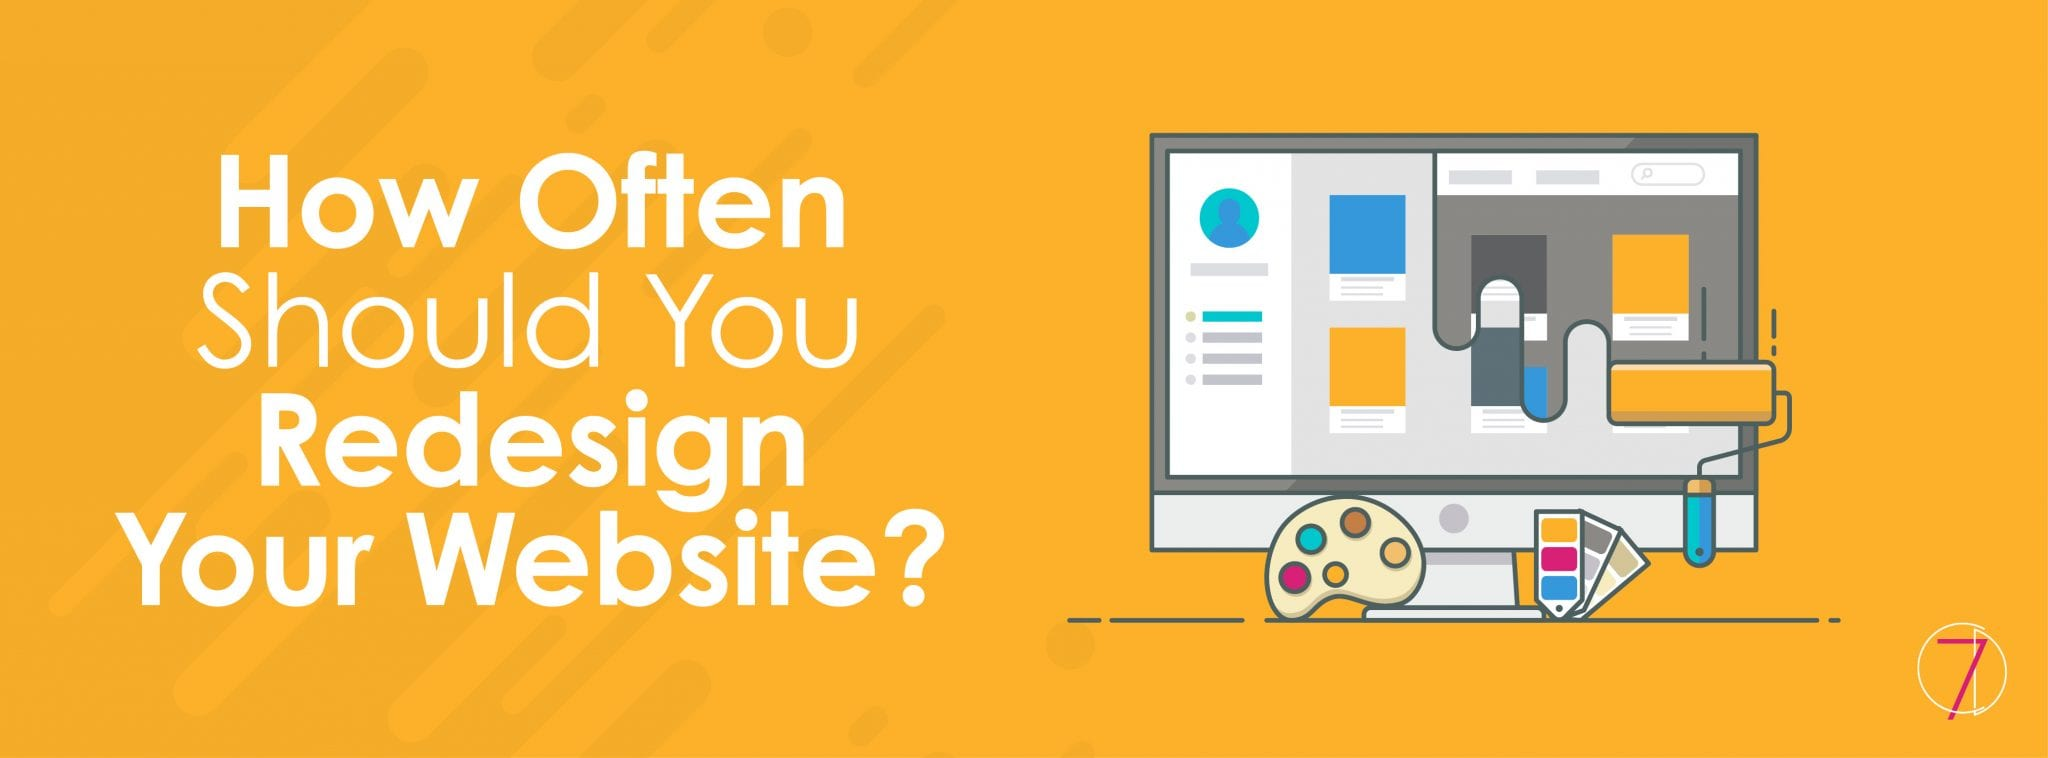 How often should you redesign your website?